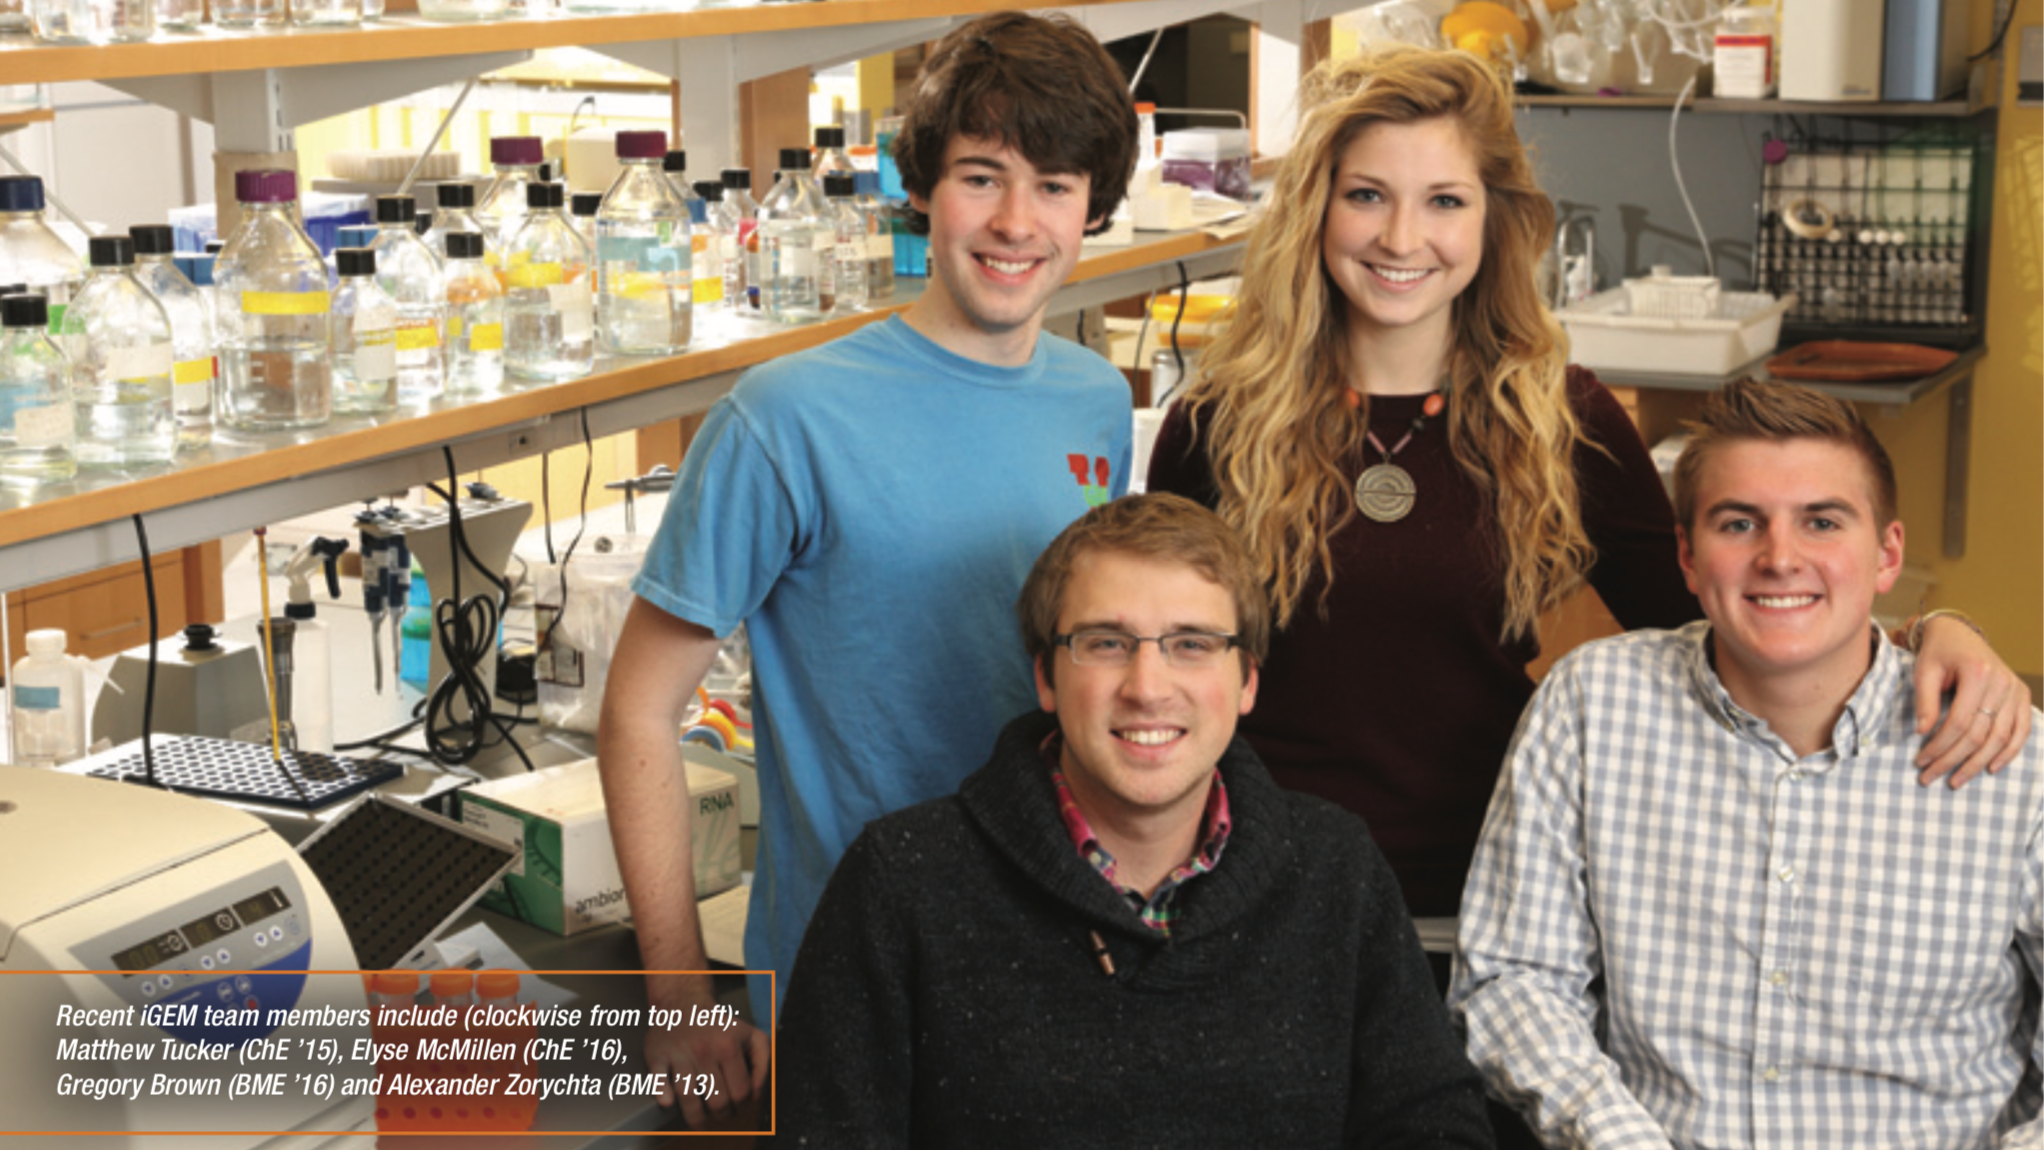 At the Frontier of Synthetic Biology - A feature on the incredible student-led iGEM synthetic biology research team which is the foundation for many student entrepreneurship projects. I led the revamping of the recruitment process and reformed the seminar in synthetic biology to increase team cohesion. Read Article >